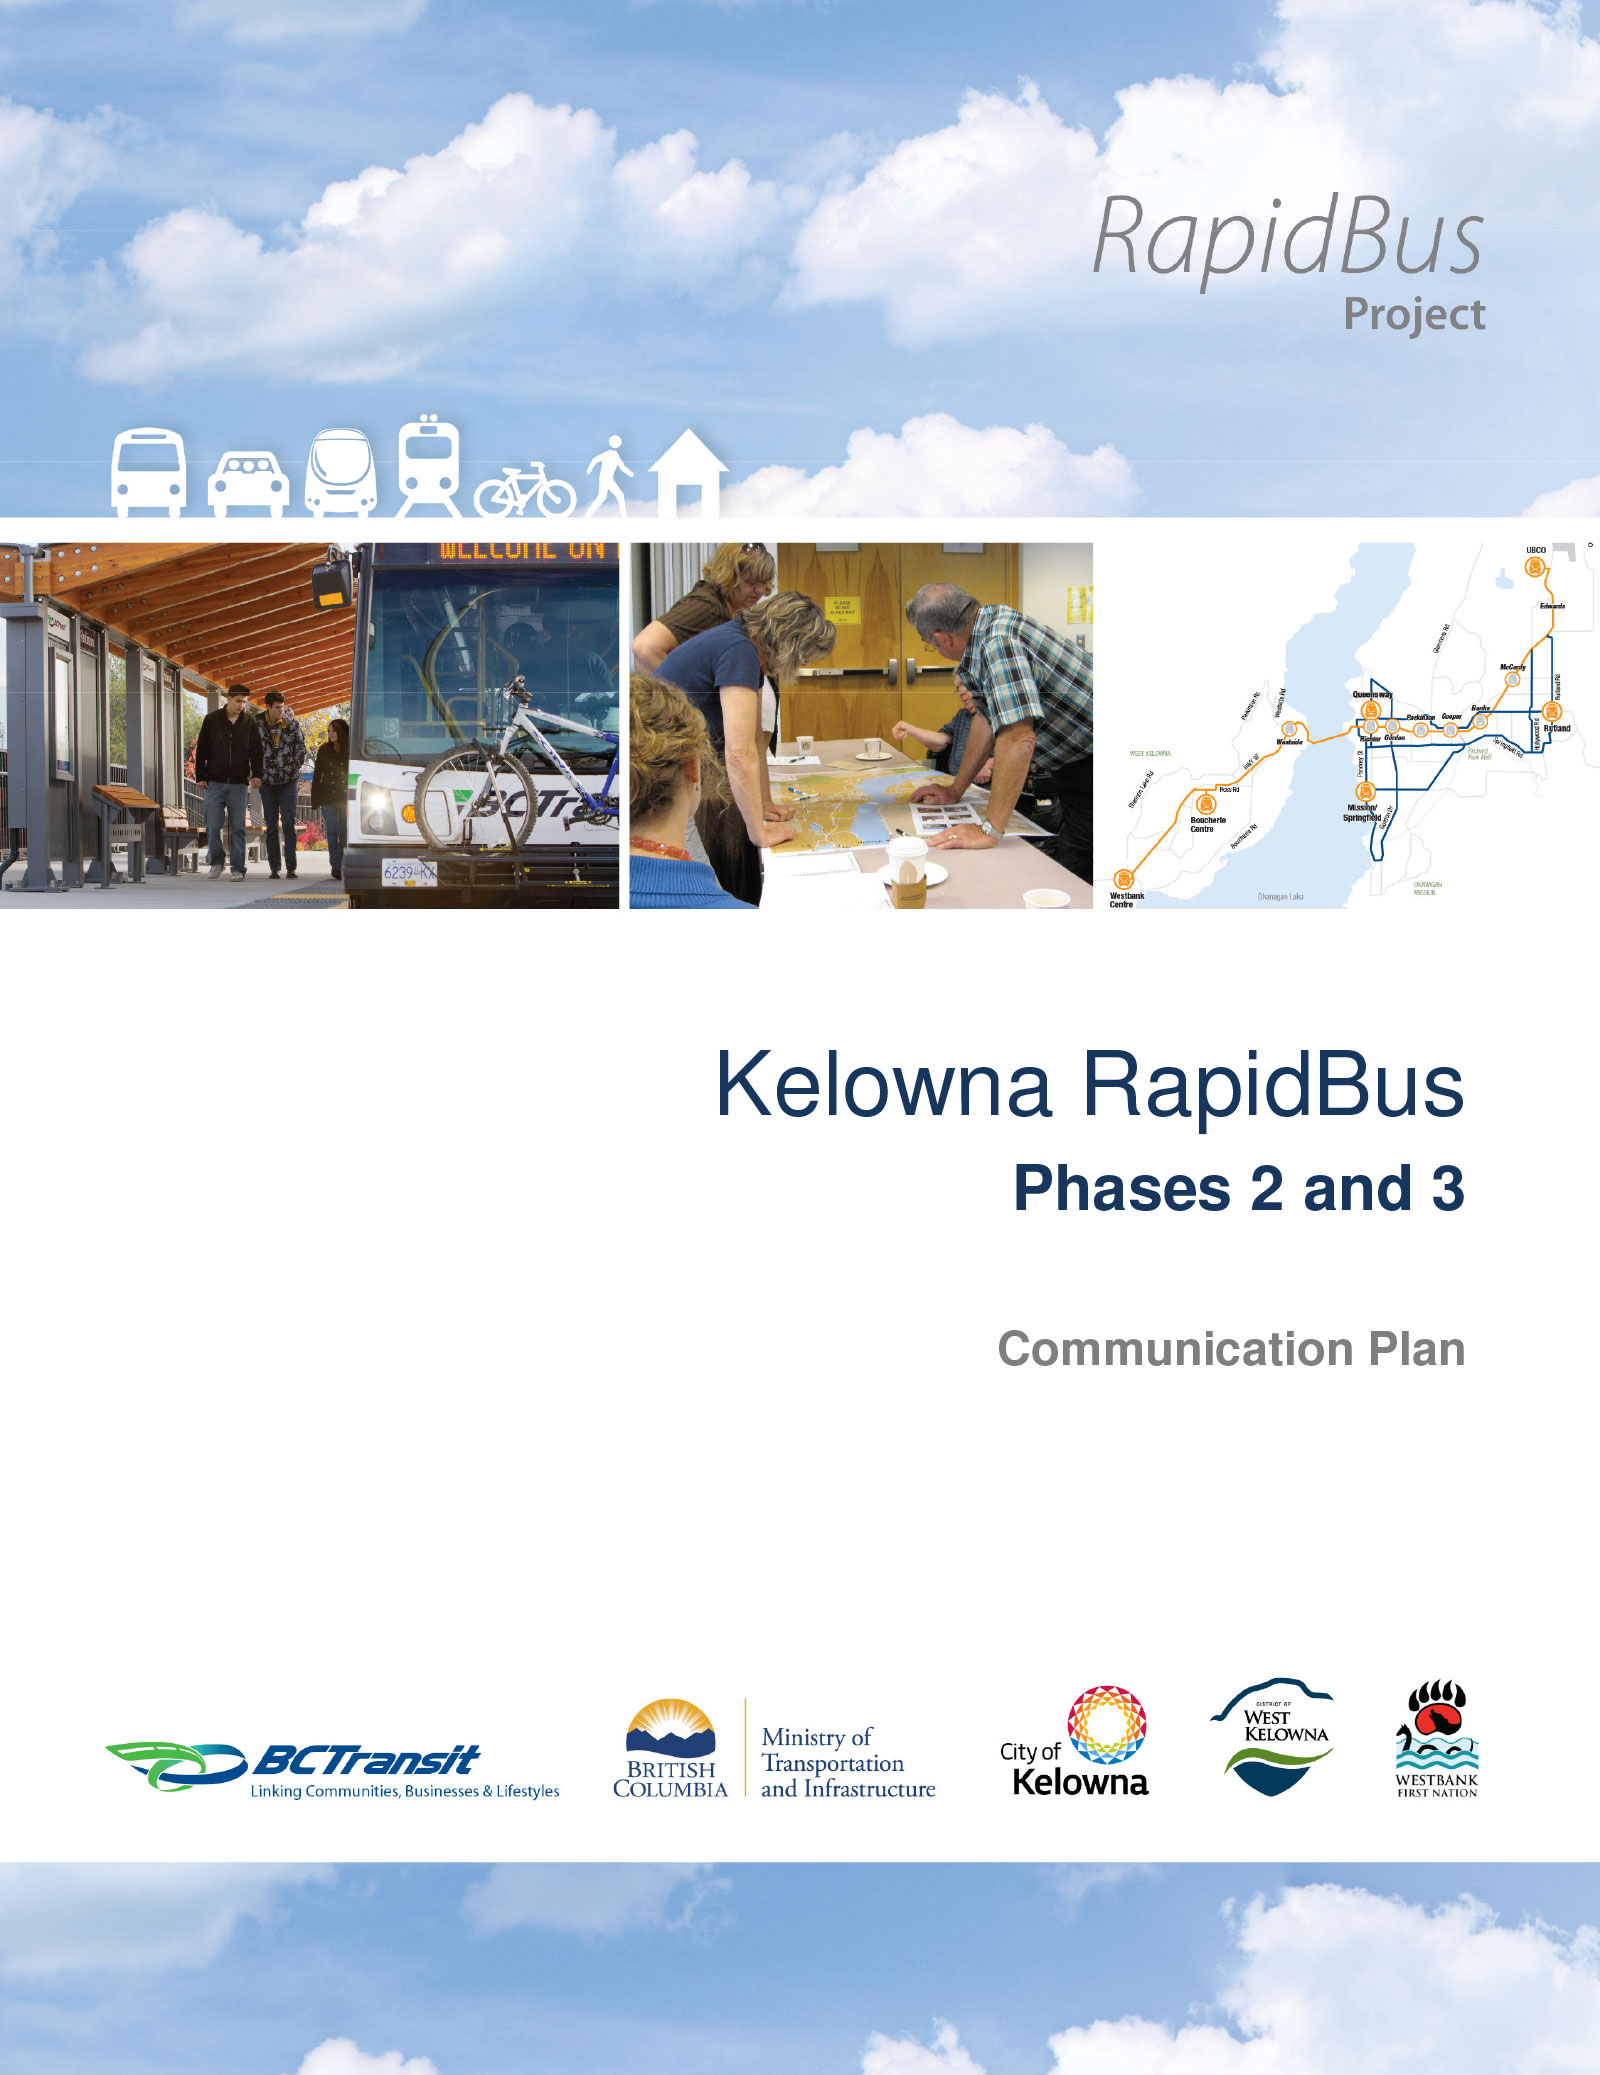 BC Transit: Kelowna RapidBus Communications Plan